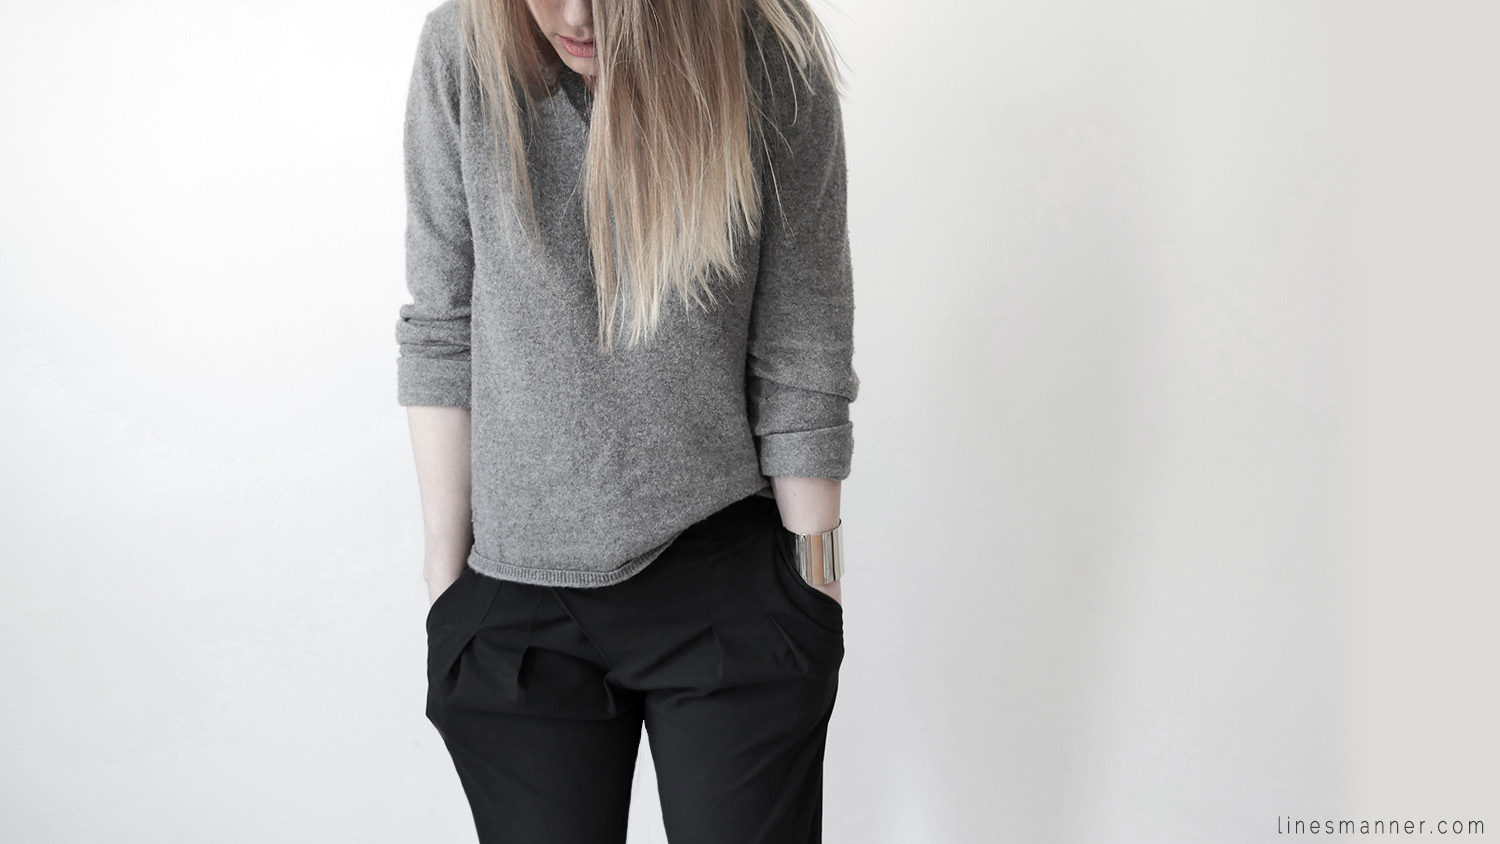 Lines-Manner-Remind-2015-Minimal-Essential-Outfit-Inspiration-Blog-Timeless-Year-Seasons-Details-Travel-Fashion-Versatile-Clean-Sleek-Quality-35